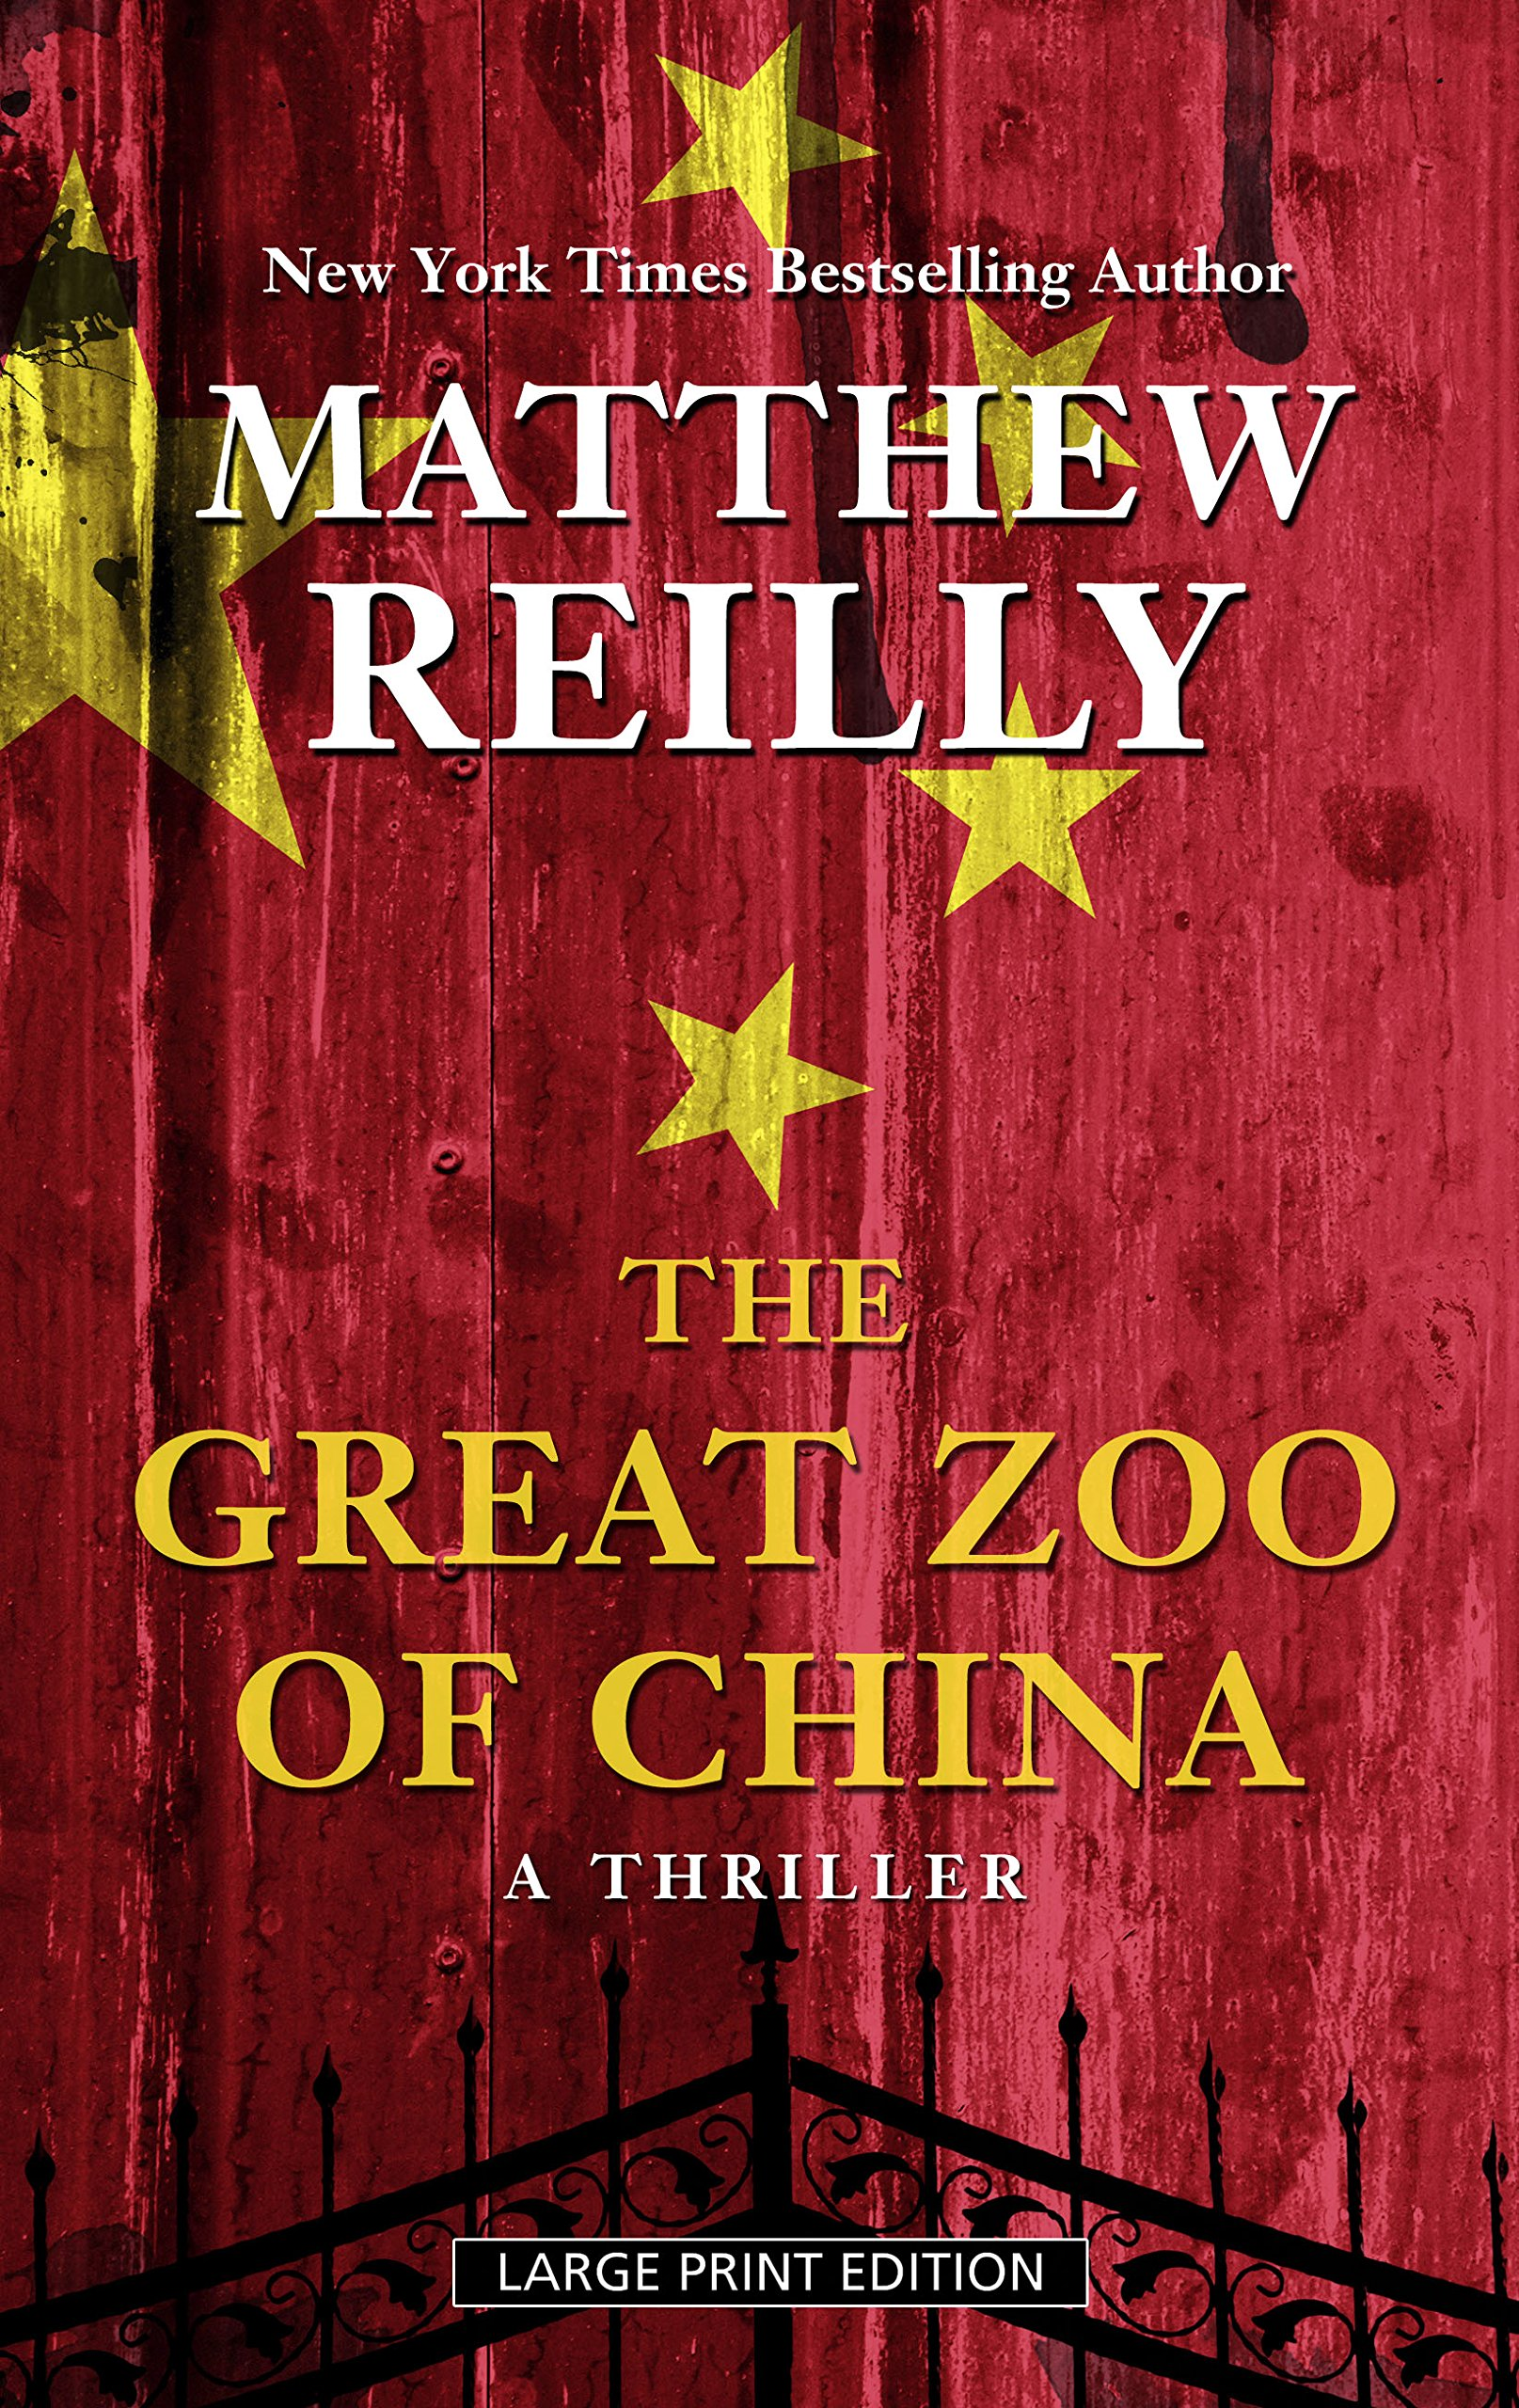 The Great Zoo Of China (Thorndike Press Large Print Thriller) ebook